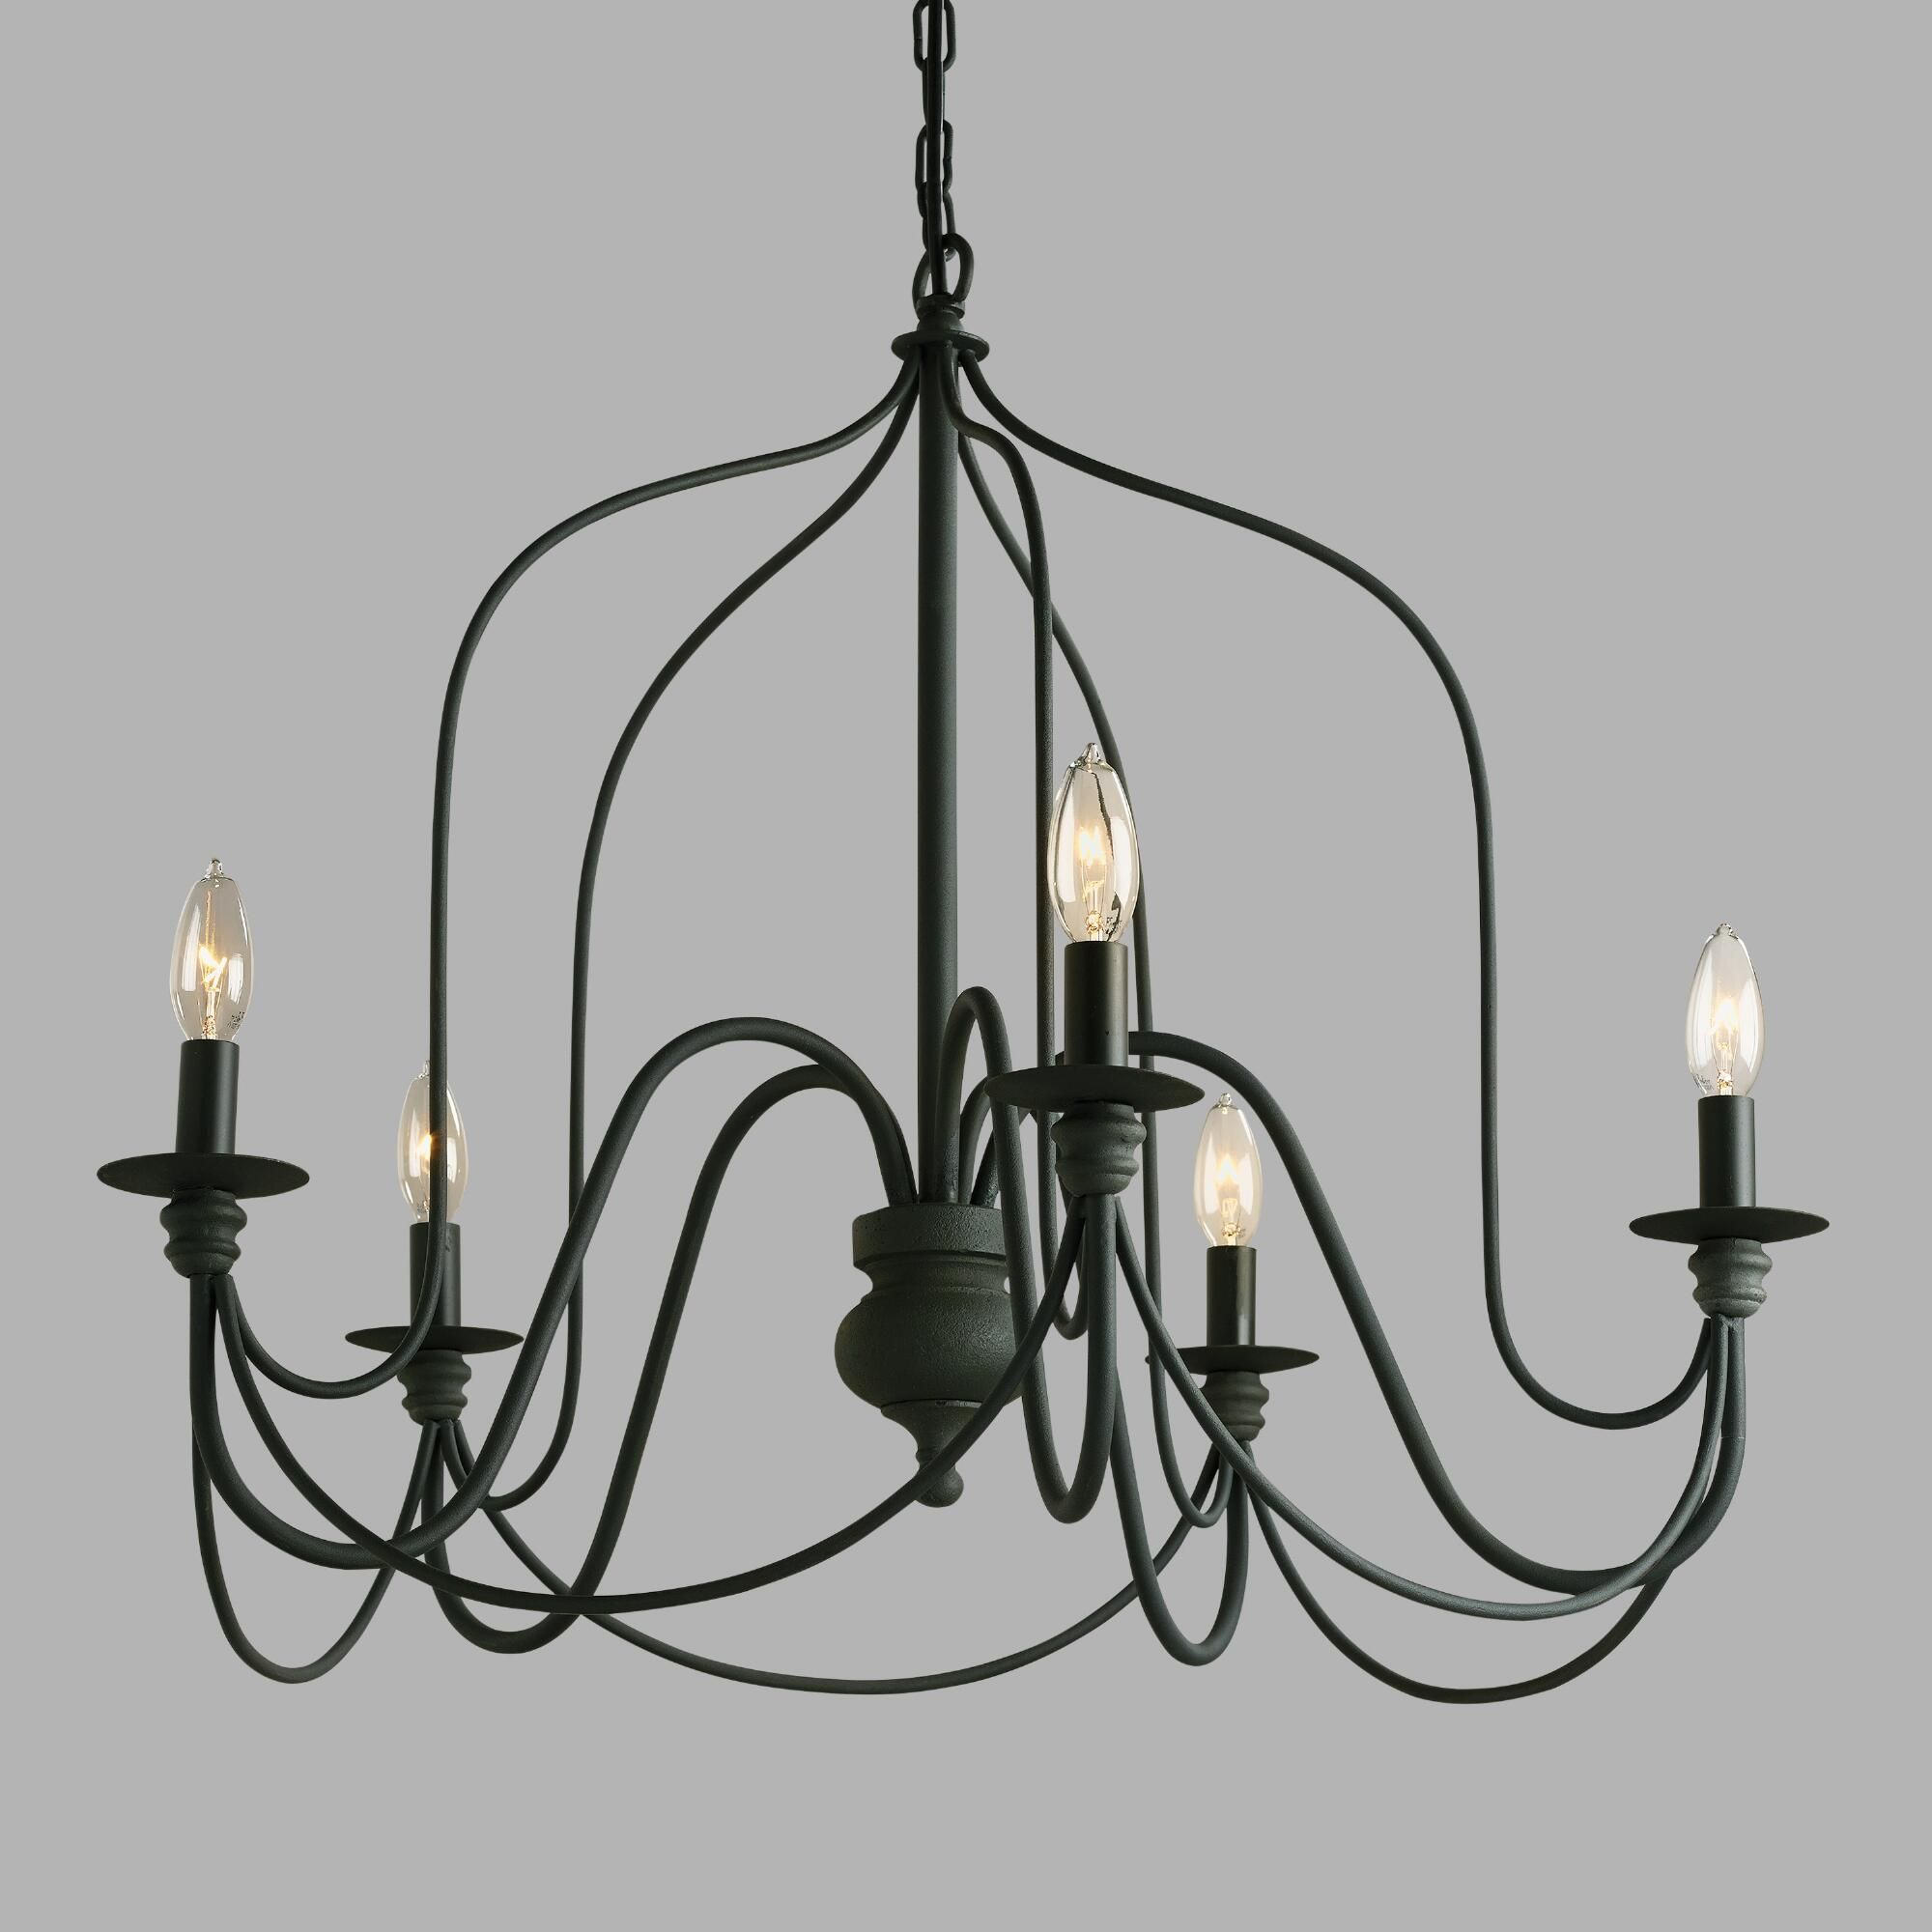 Our Exclusive Rustic Wire Chandelier Features A Slender Silhouette Inspired By Vintage French Chandeliers With